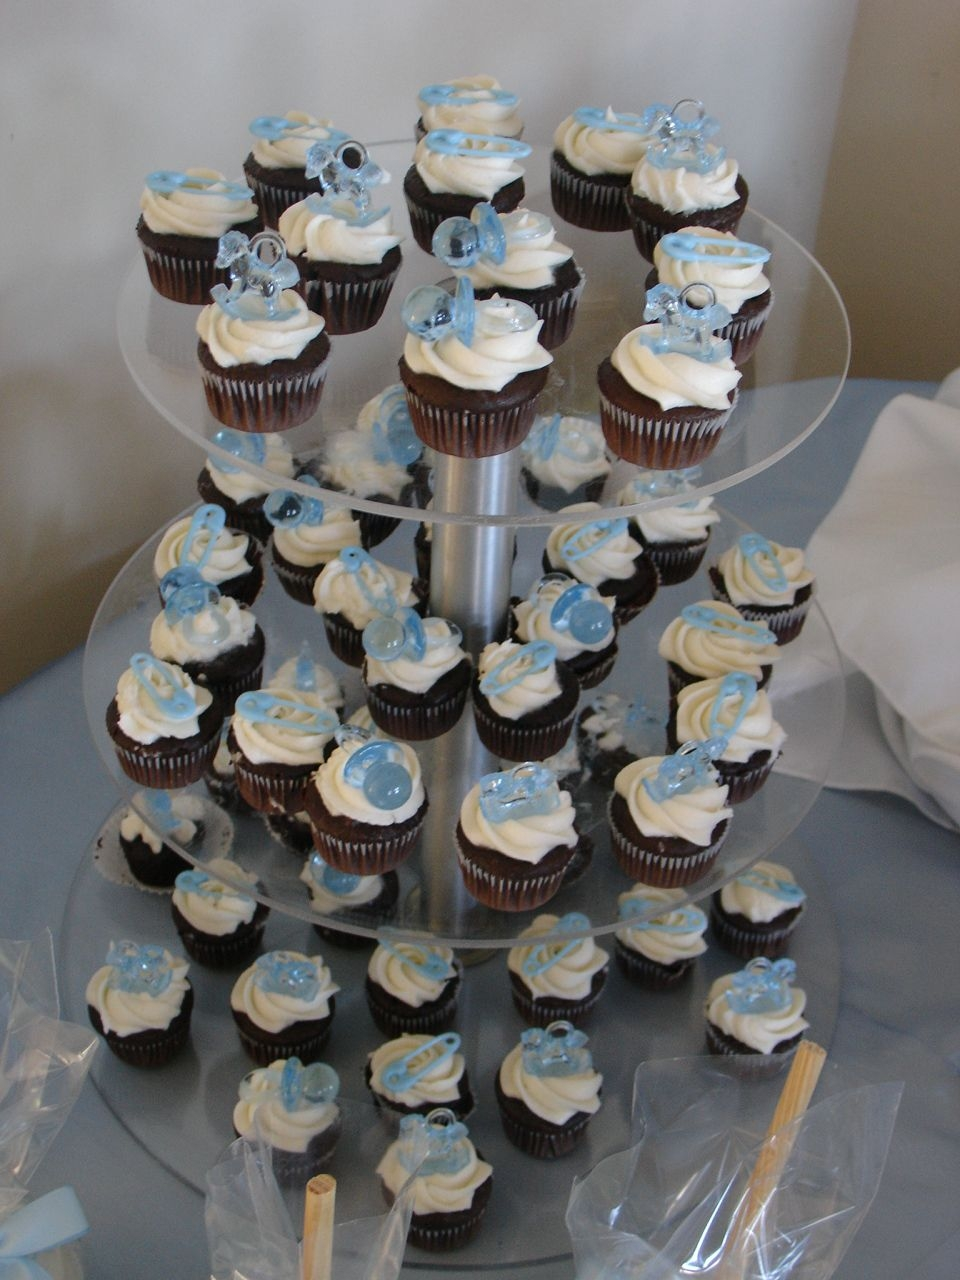 Mini Baby Showercupcakes Chocolate mini cupcakes with cream chease buttercream and plastic decoration, thanks for looking!!!!